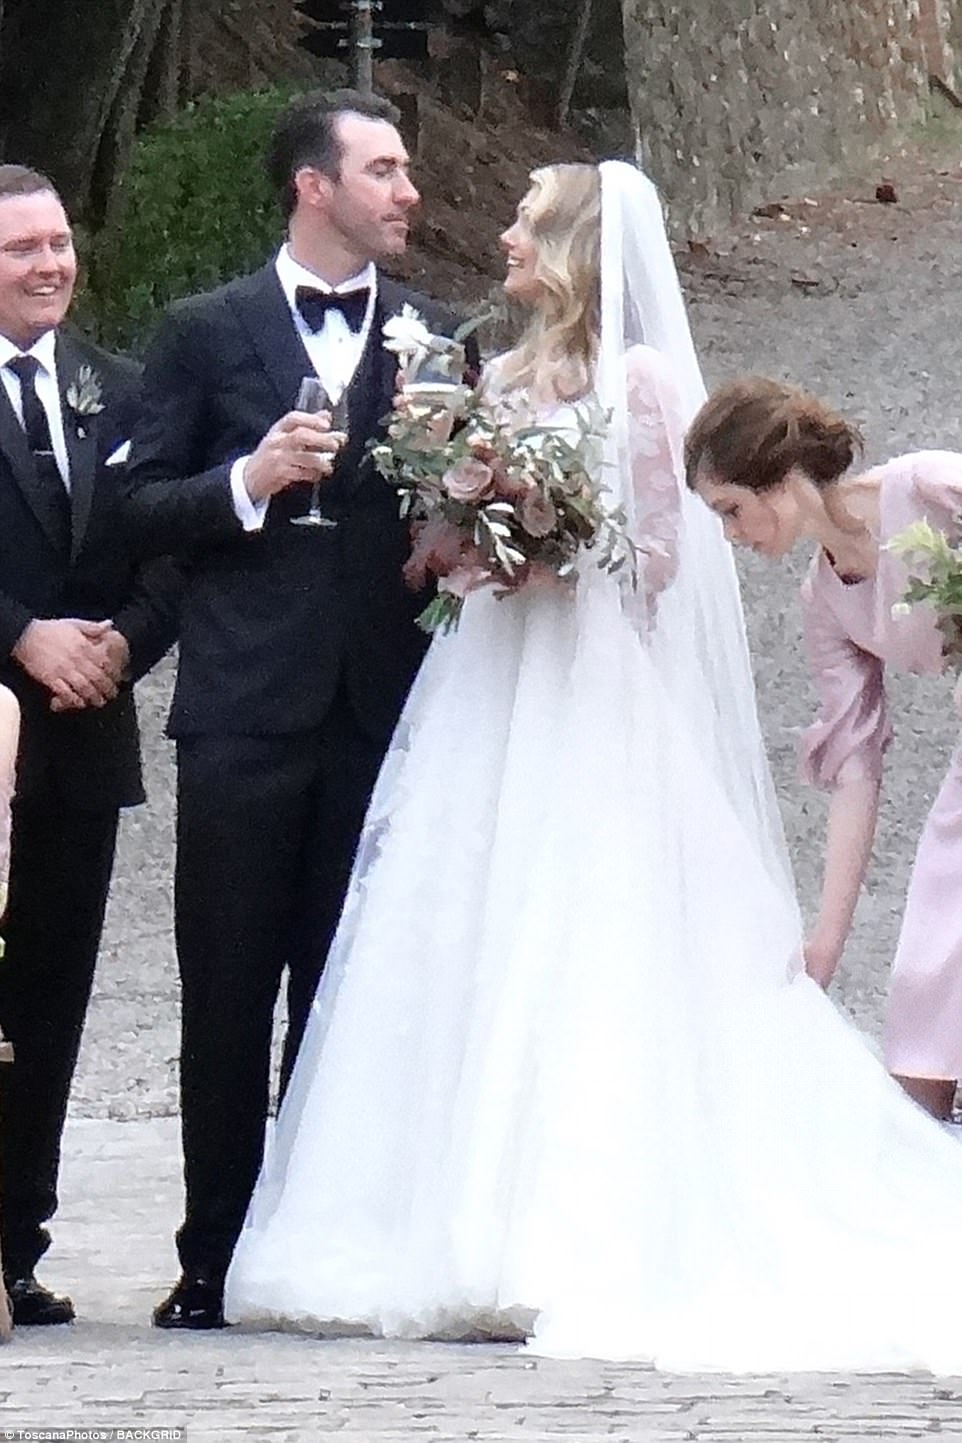 Kate Upton ties the knot with Justin Verlander in Italy